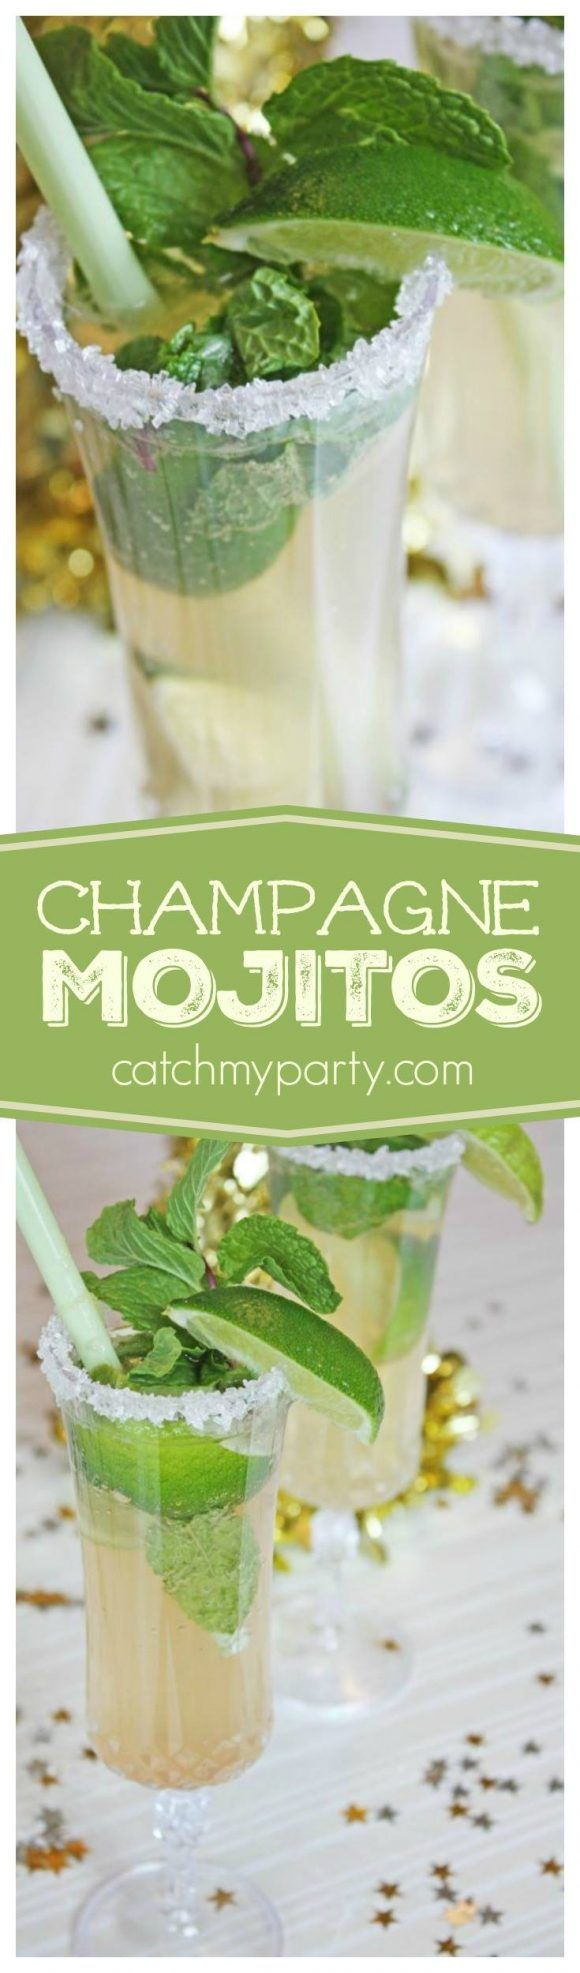 Champagne Mojitos great to serve on New Year's Eve or at your summer party! | CatchMyParty.com